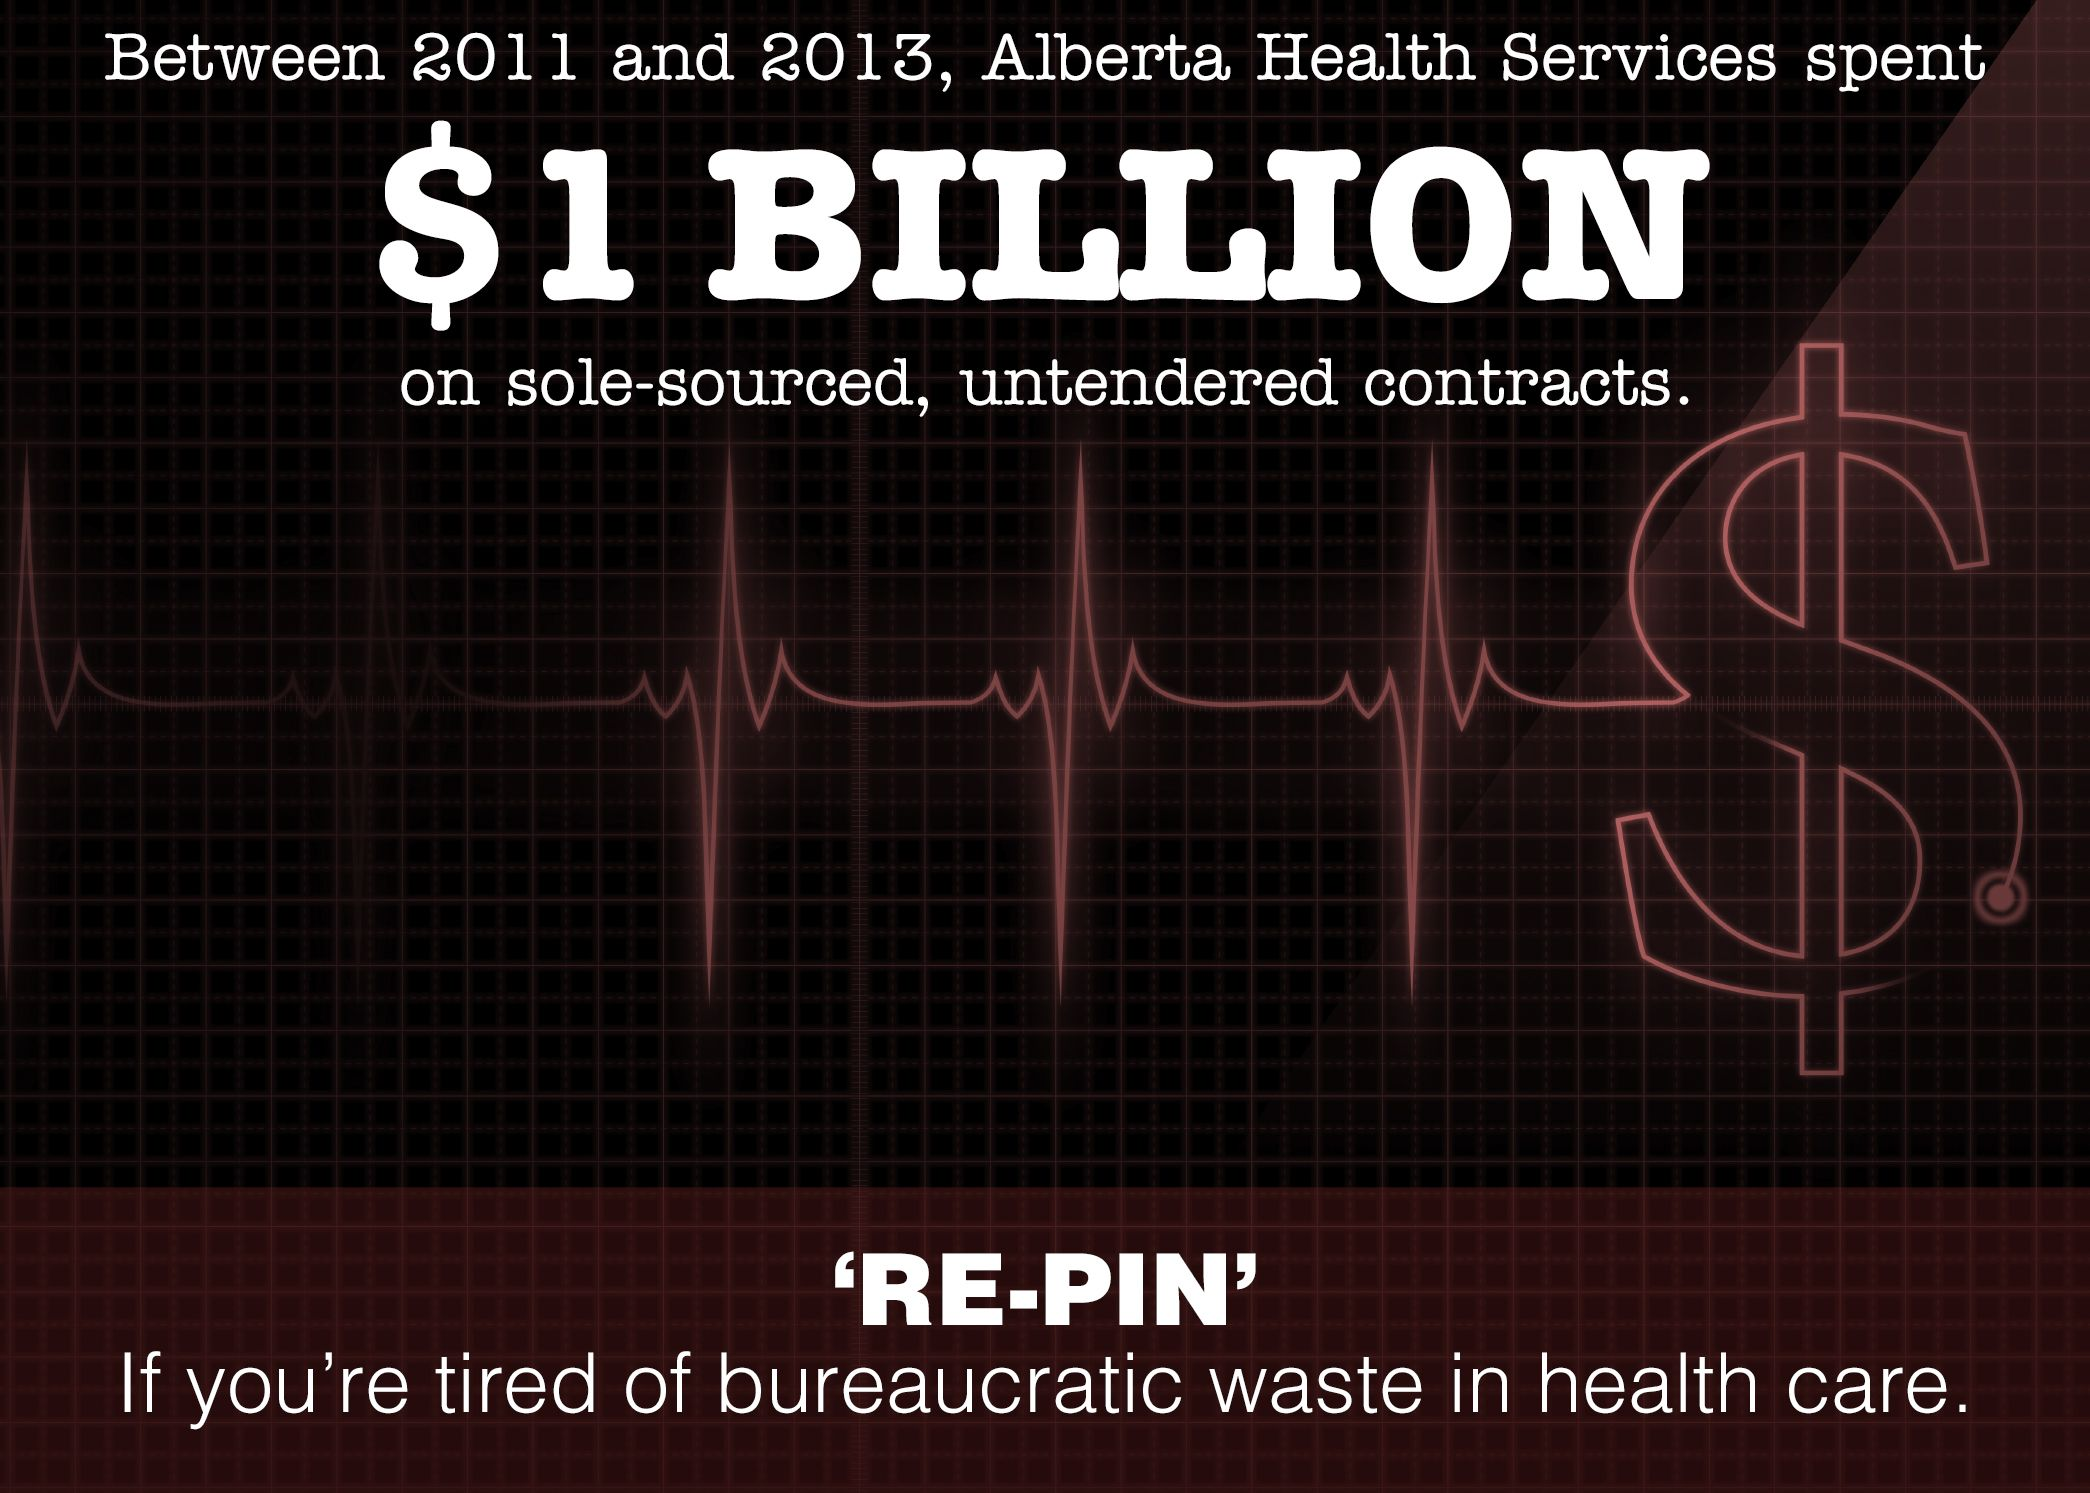 Today The Wildrose Official Opposition Revealed That Ahs